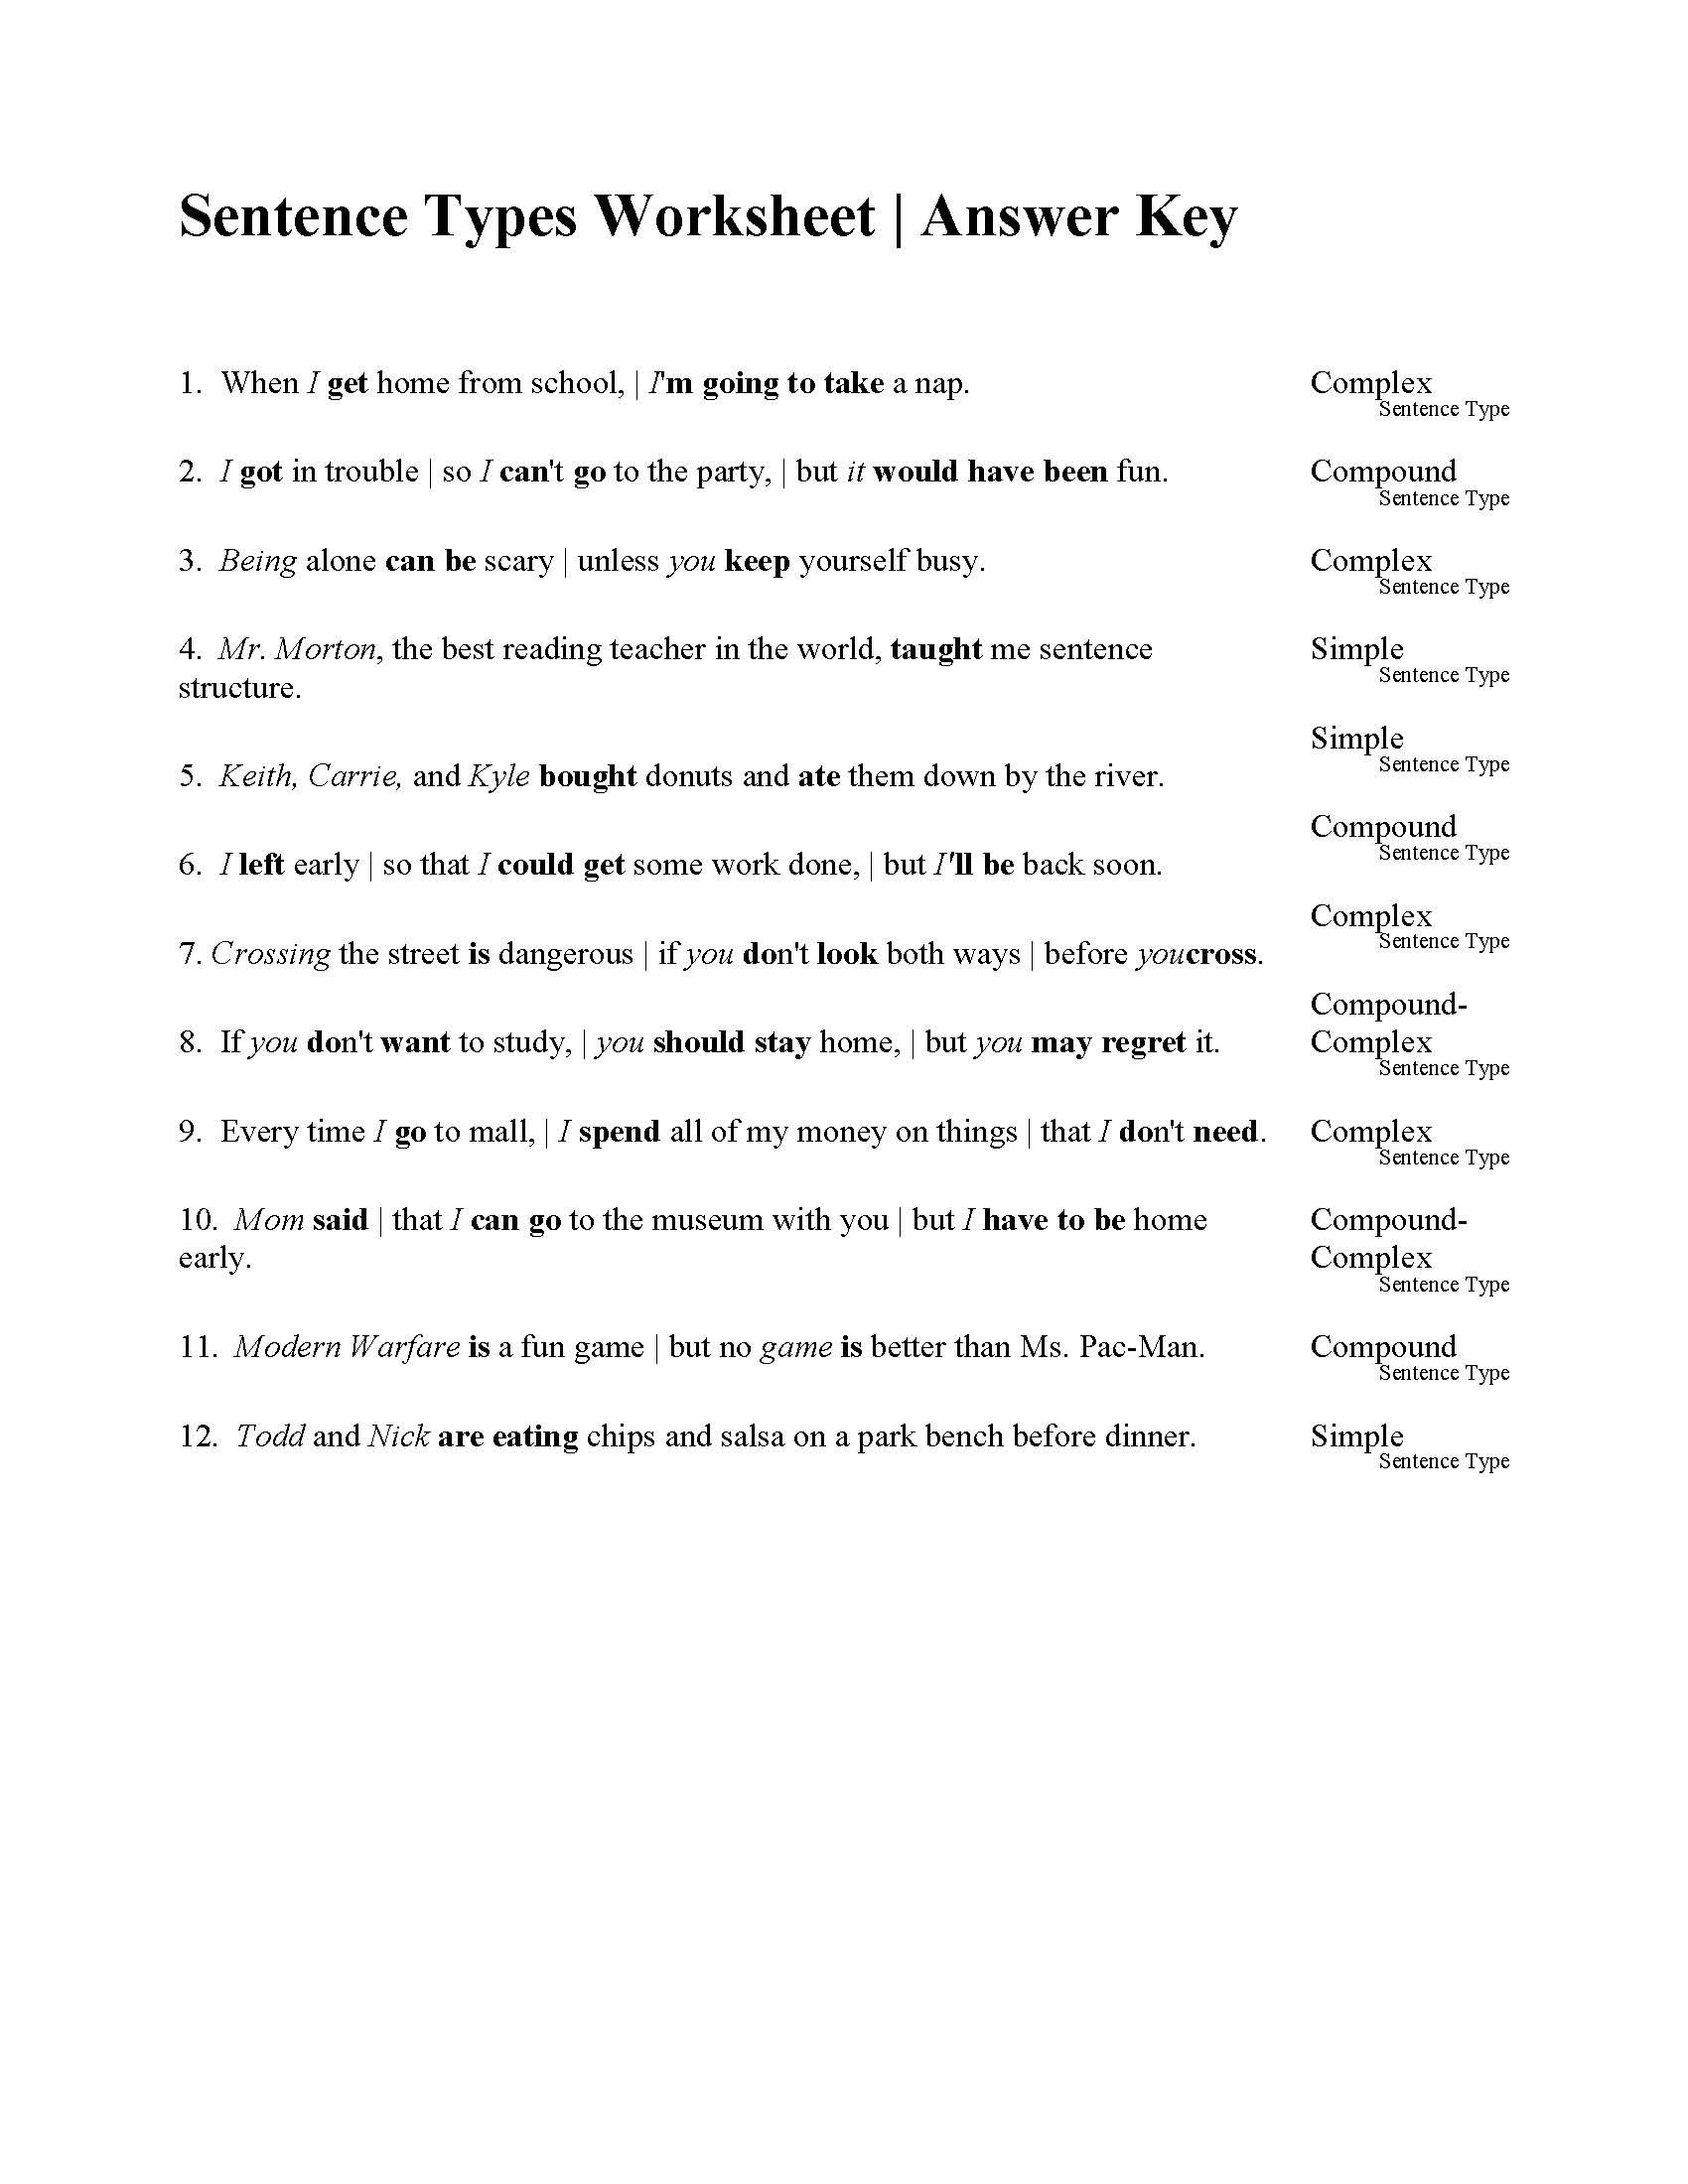 Free Sentence Structure Worksheets Sentences Types Worksheet